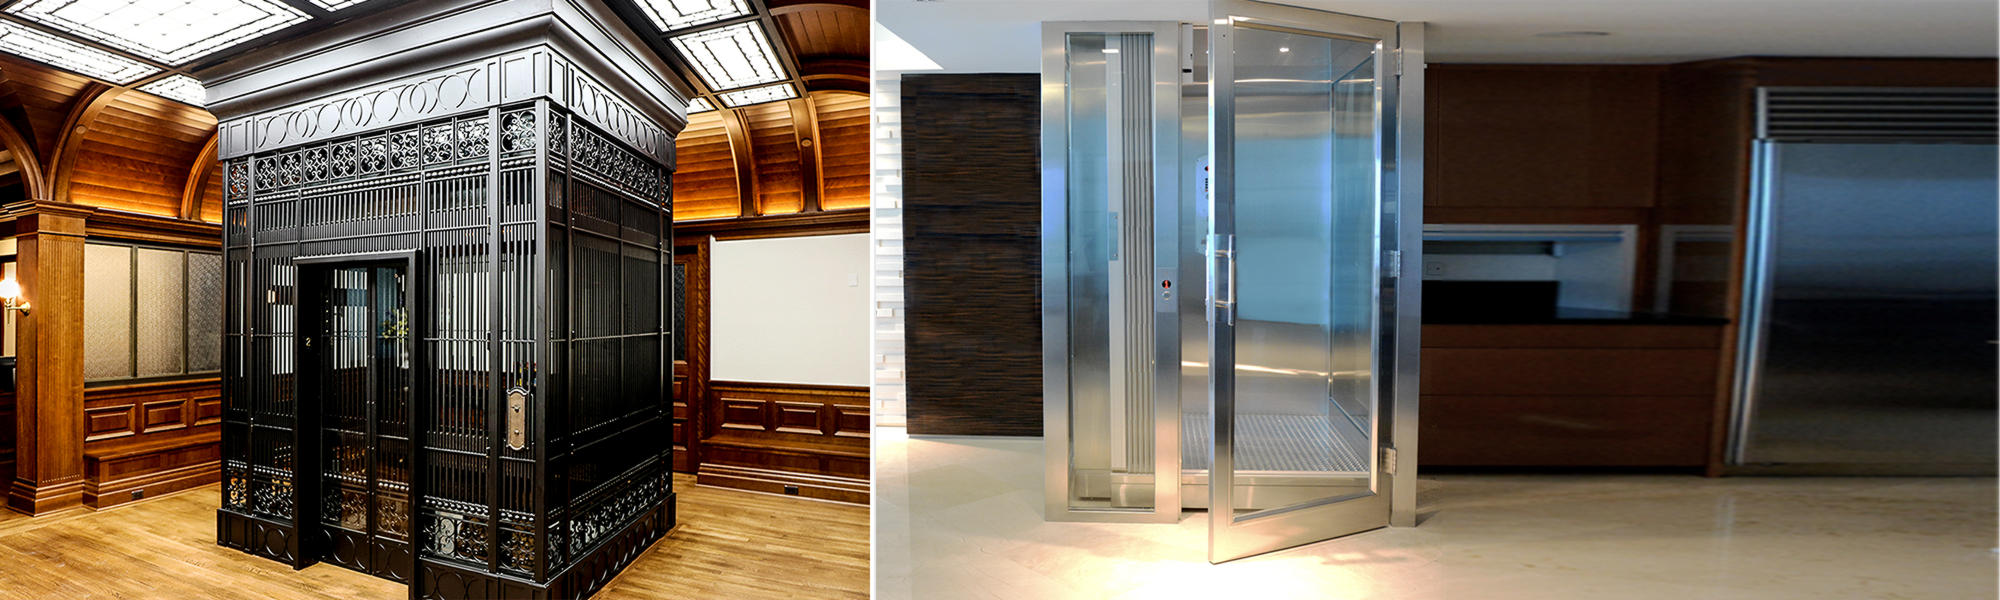 Exciting India Home Elevators Commercial Elevator Lula Elevator Area Access Home Elevators Toronto Cost Home Elevators Cost houzz-02 Home Elevators Cost